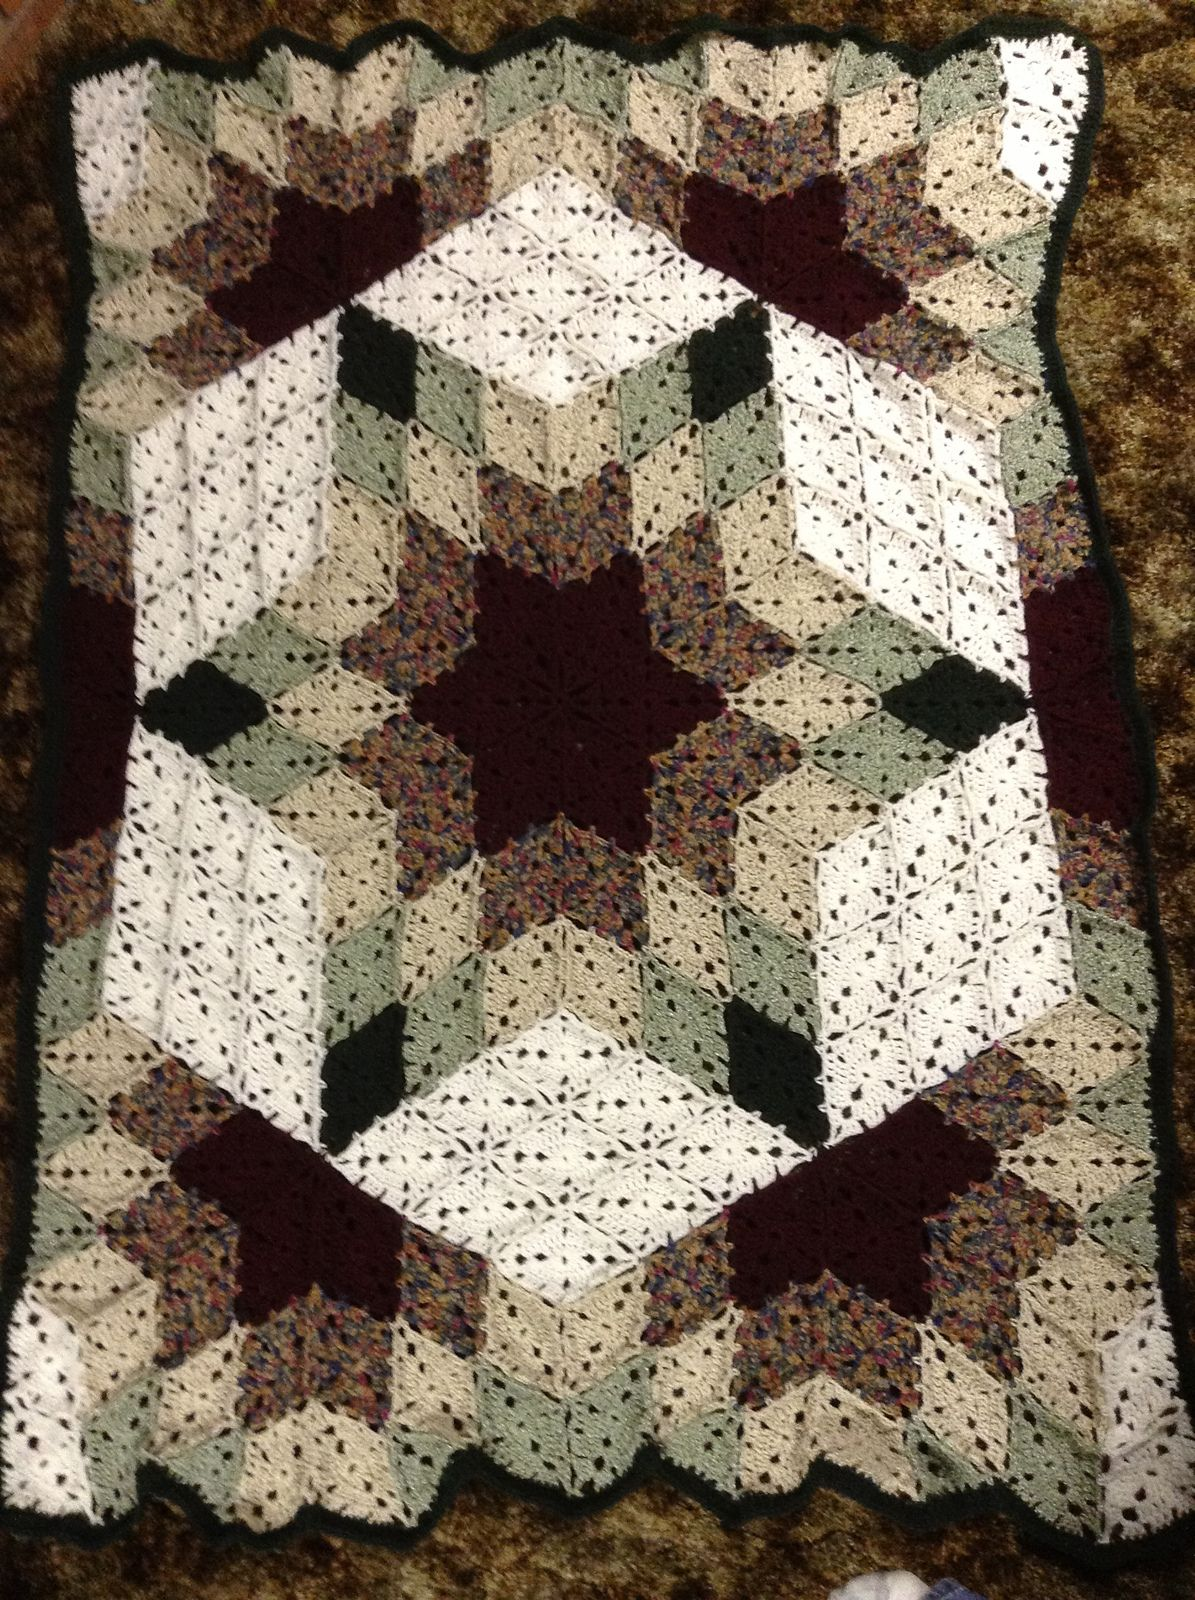 Ravelry desert star prairie star throw by marilyn coleman and ravelry desert star prairie star throw by marilyn coleman and mary jane protus bankloansurffo Image collections